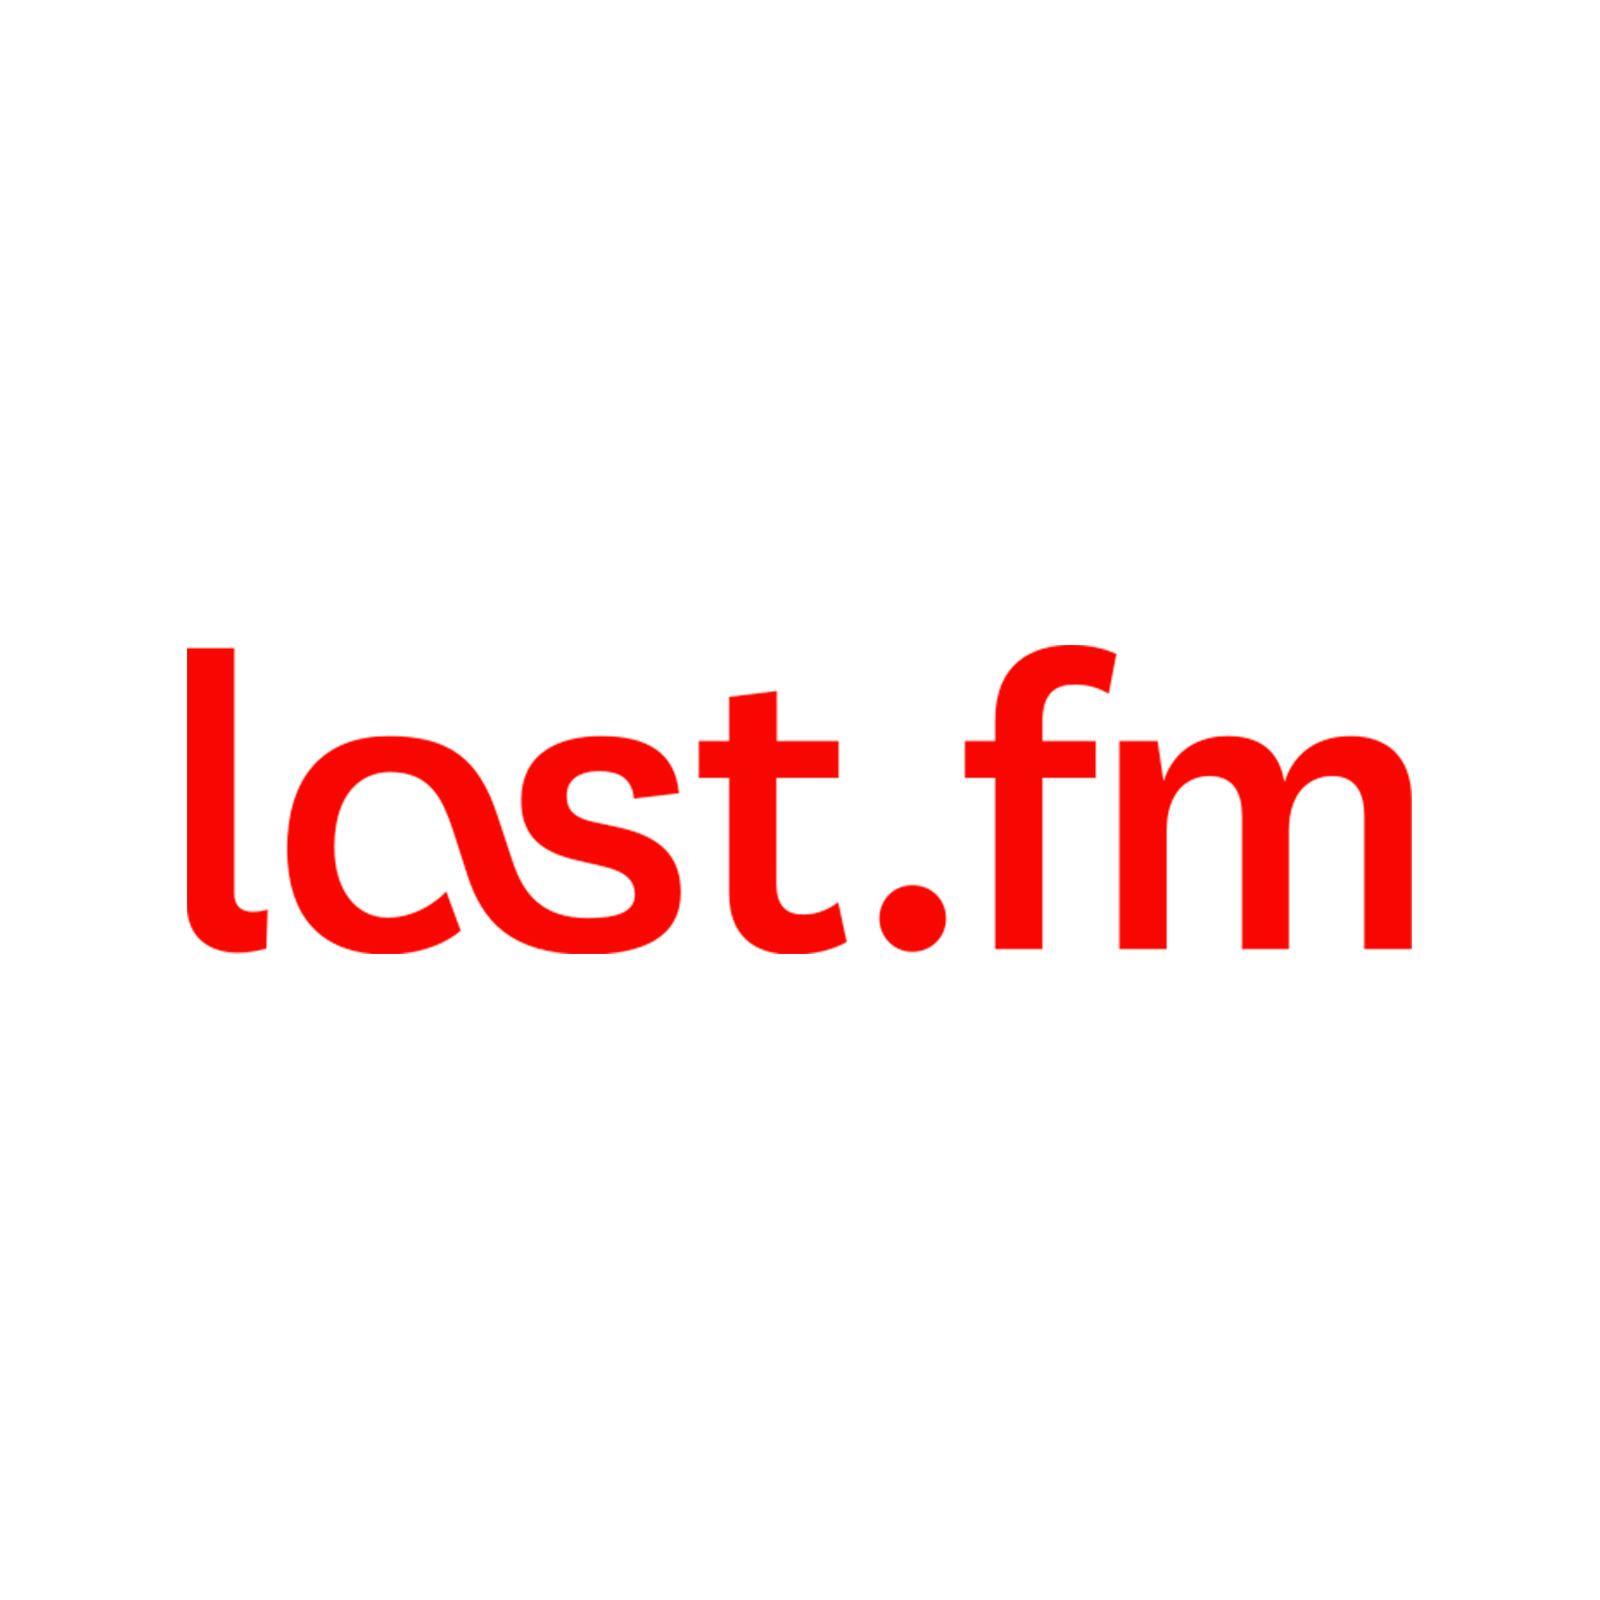 """Last.fm is a music website, founded in the United Kingdom in 2002. Using a music recommender system called """"Audioscrobbler"""", Last.fm builds a detailed profile of each user's musical taste."""